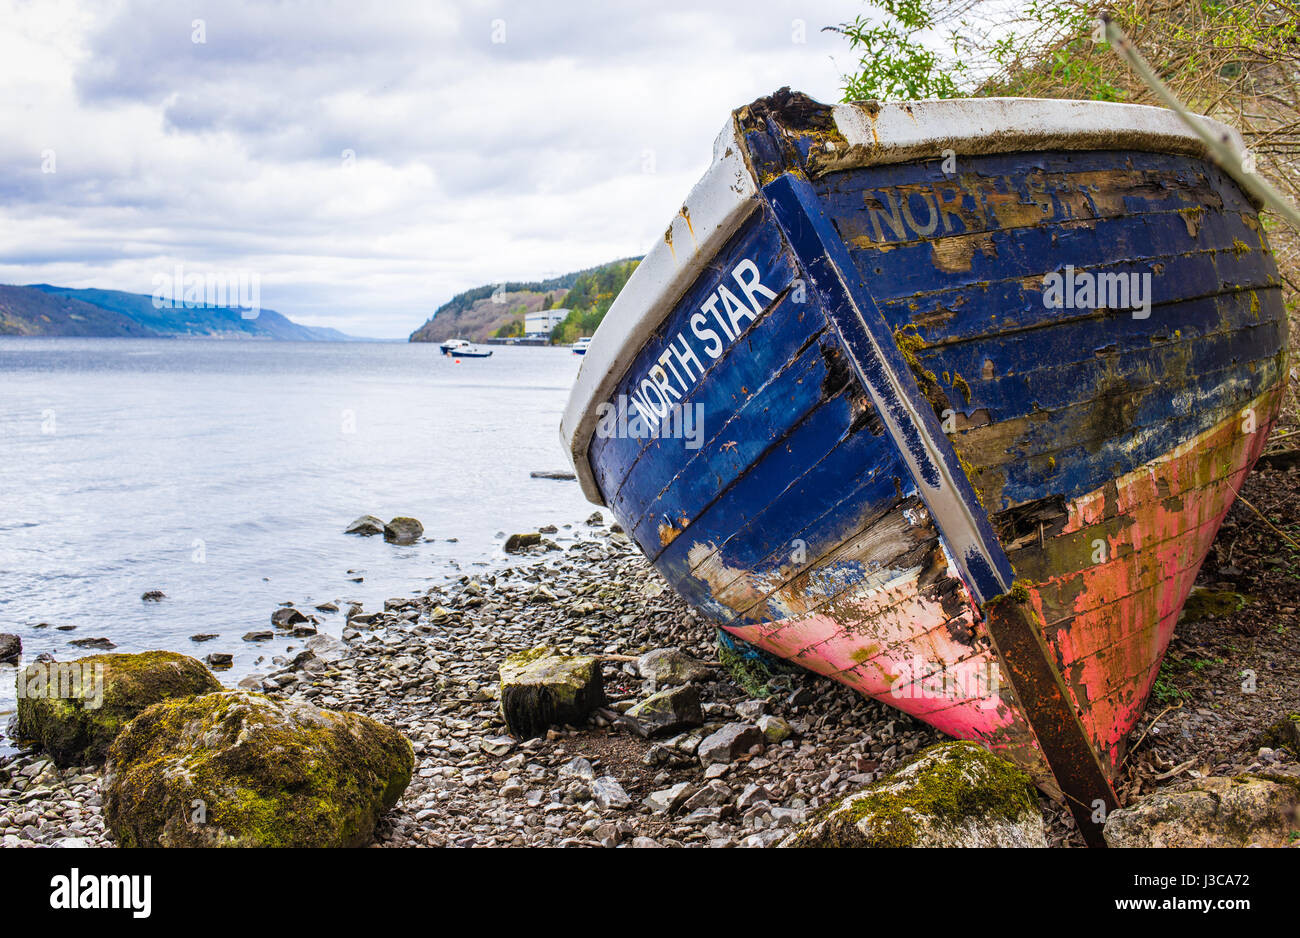 North Star old fallen to bits boat on Loch Ness shore - Stock Image